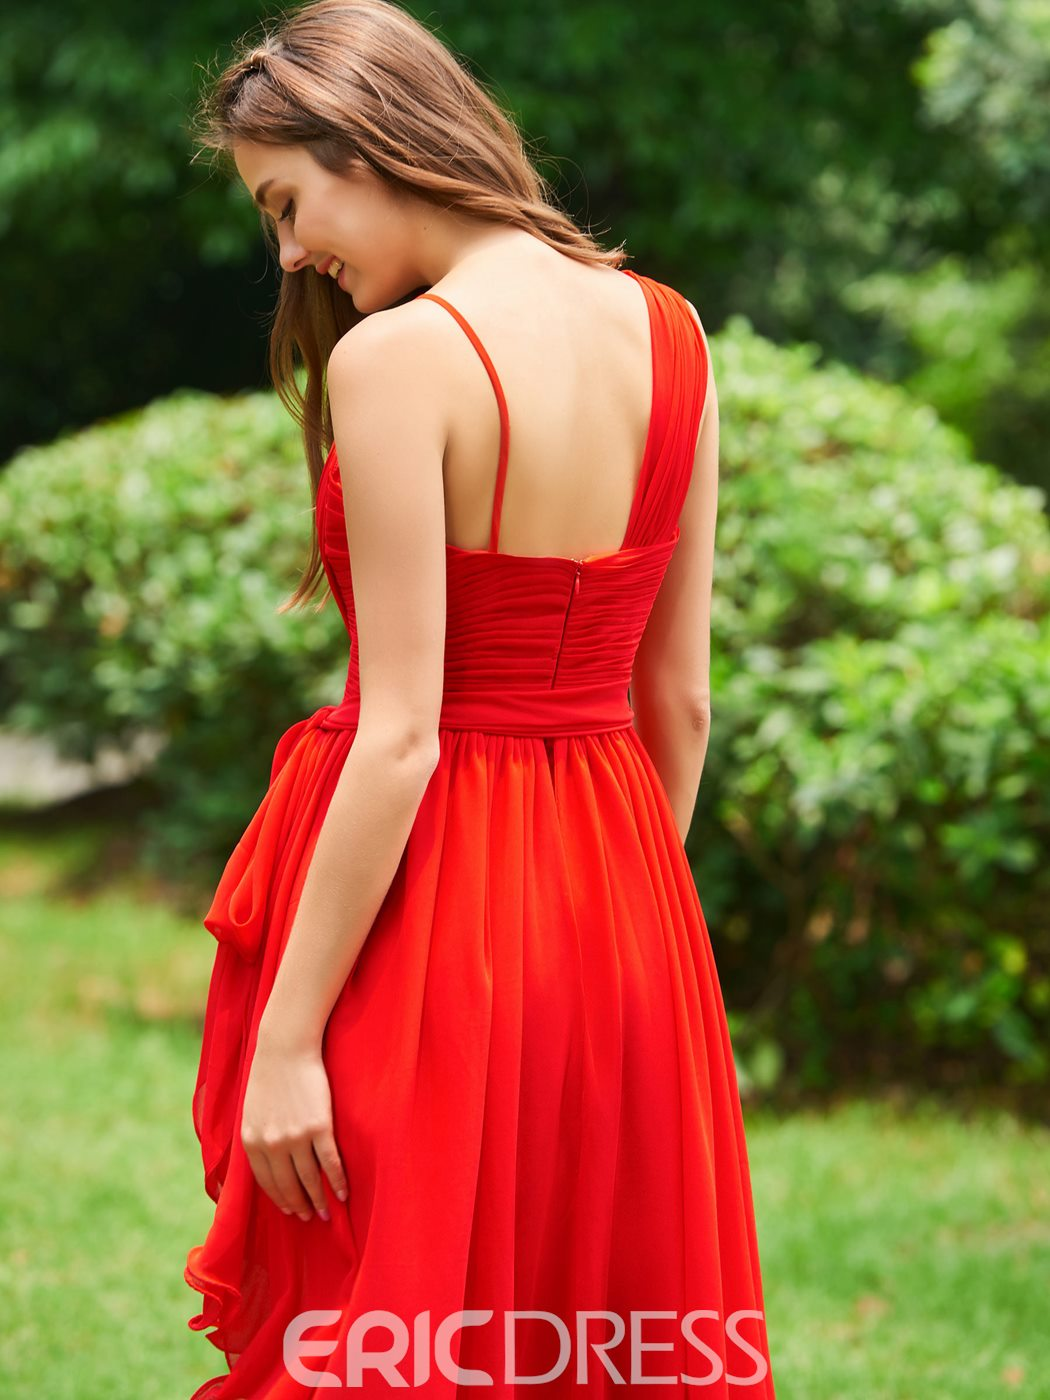 Ericdress A Line V Neck Asymmetry Red Prom Dress